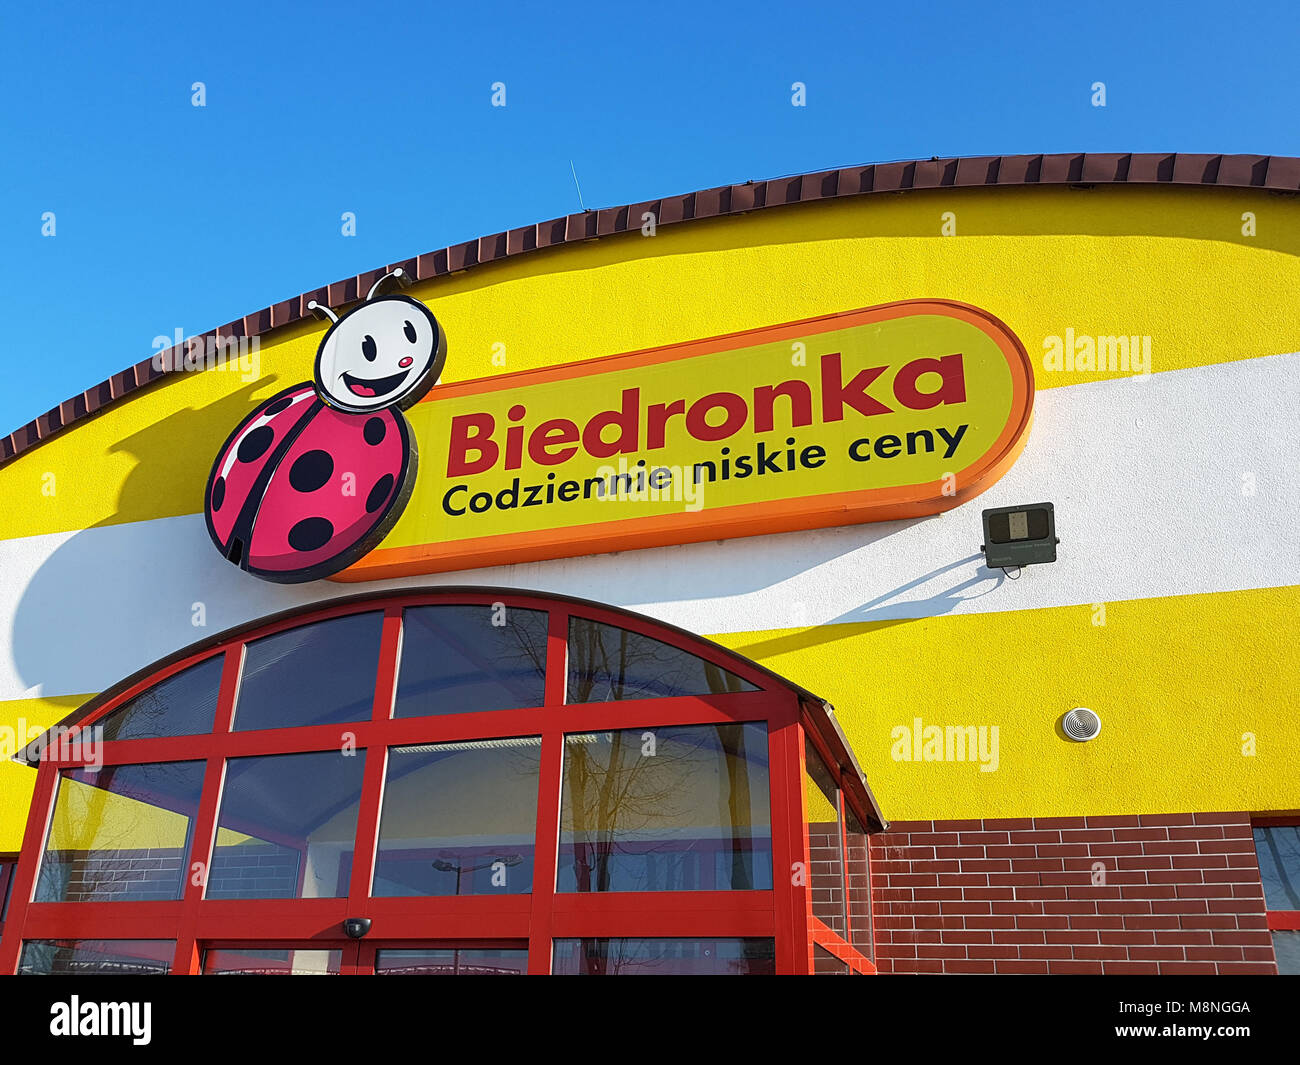 Gorlice, Poland - February 19, 2017: Exterior view of the Biedronka supermarket with the logo situated on the top of the entrance. Stock Photo